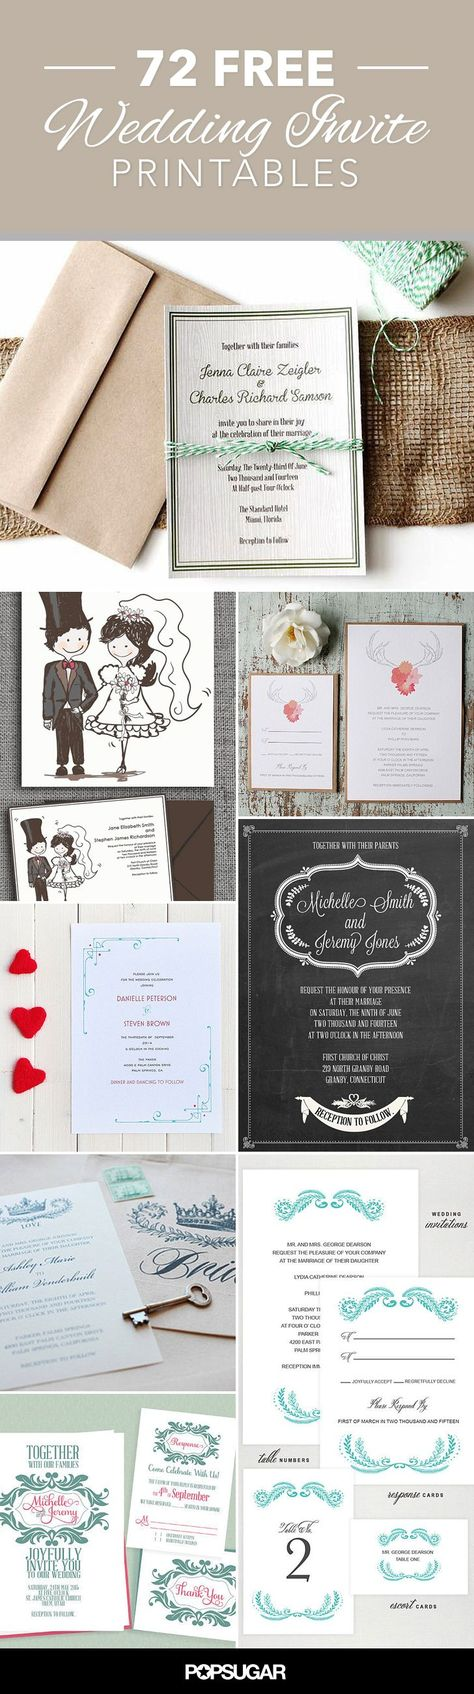 Over 200 Wedding Invitations That Can Be Instantly Designed Online